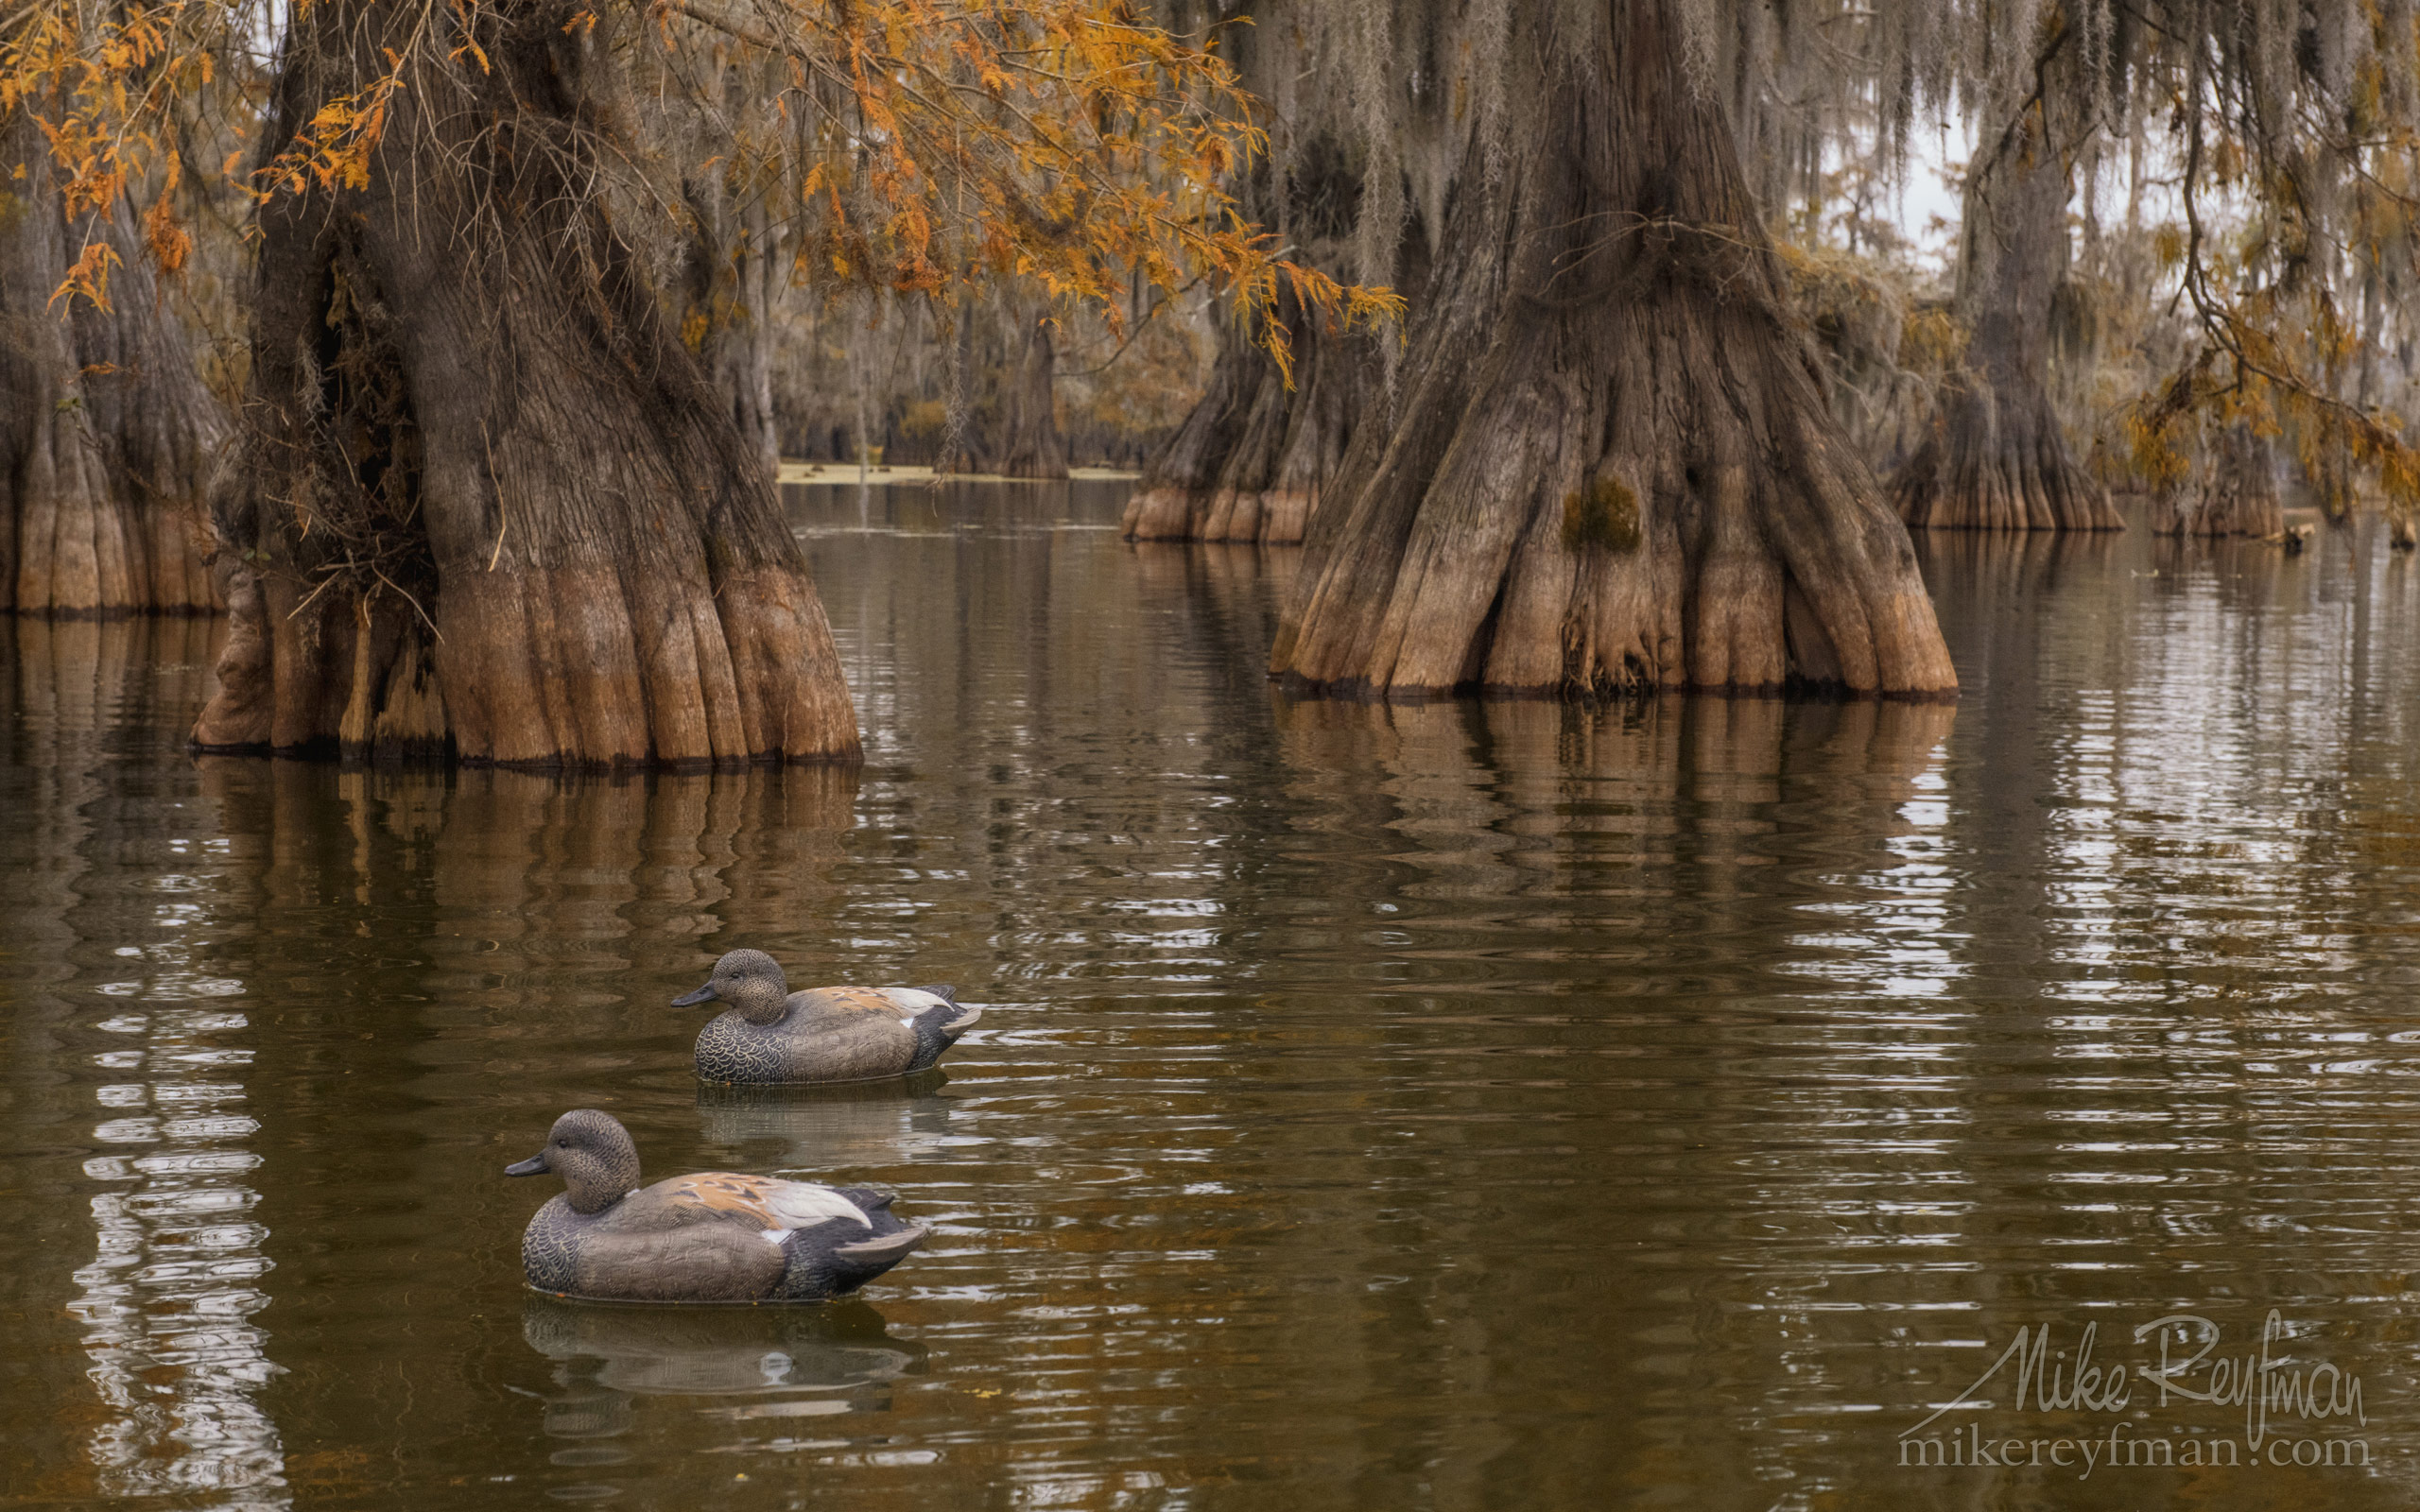 Duck decoys and Bald Cypress Trees. Lake Martin, Louisiana, US 089-LT1-50A2514.jpg - Bold Cypress and Tupelo Trees in the swamps of Atchafalaya River Basin. Caddo, Martin and Fousse Lakes. Texas/Louisiana, USA. - Mike Reyfman Photography